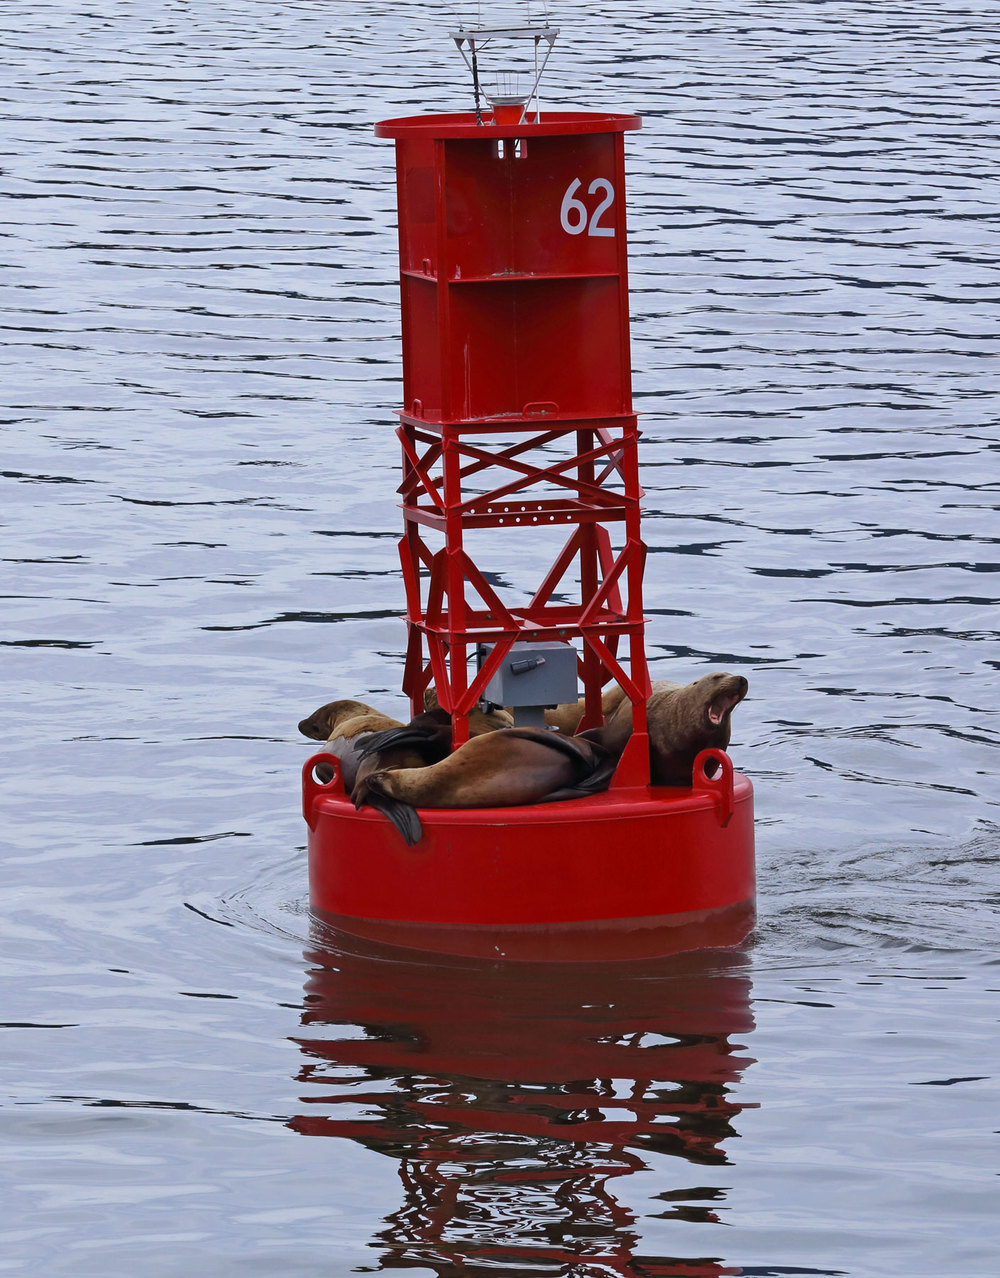 Sea lions napping on a buoy